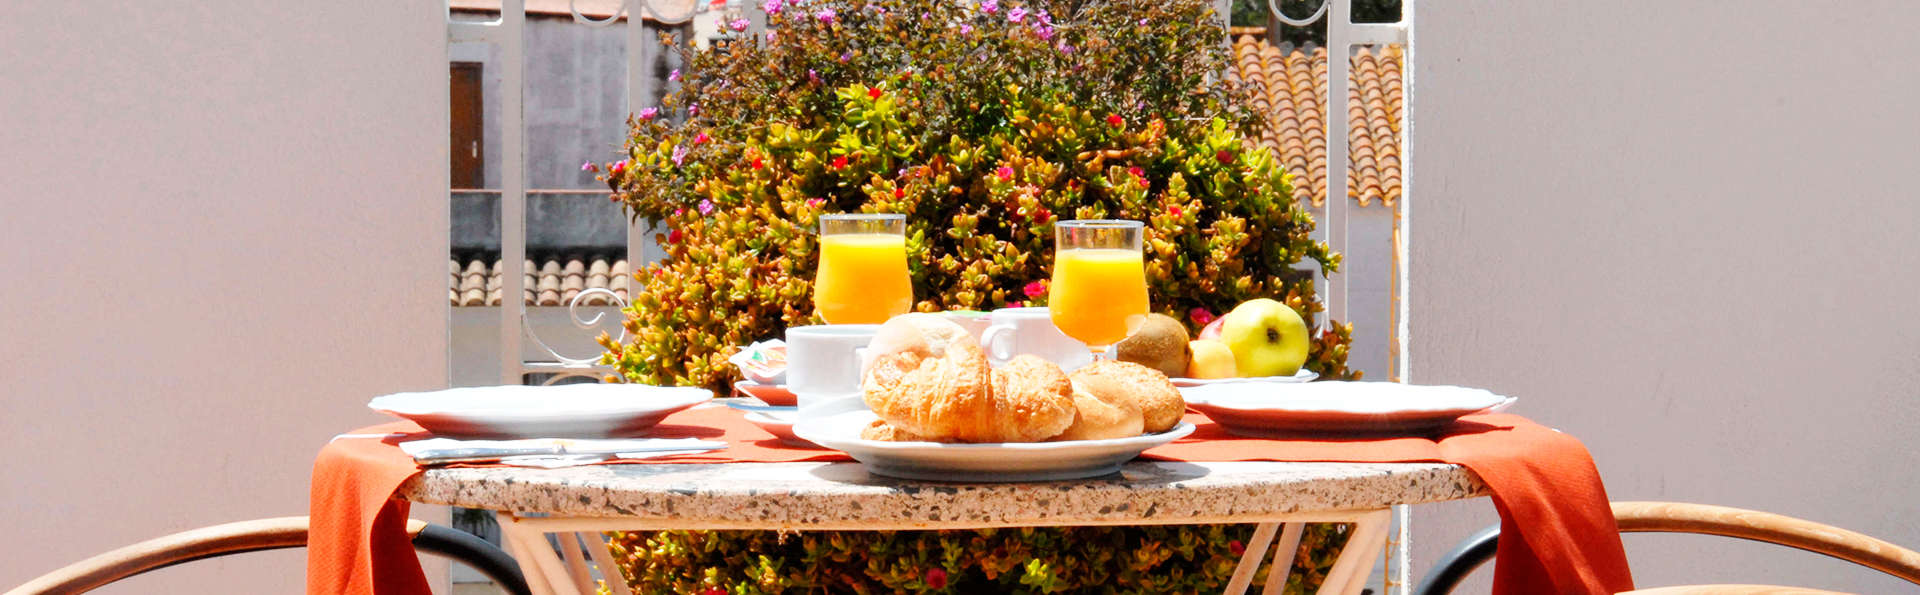 Hotel Santa Anna - EDIT_breakfast.jpg